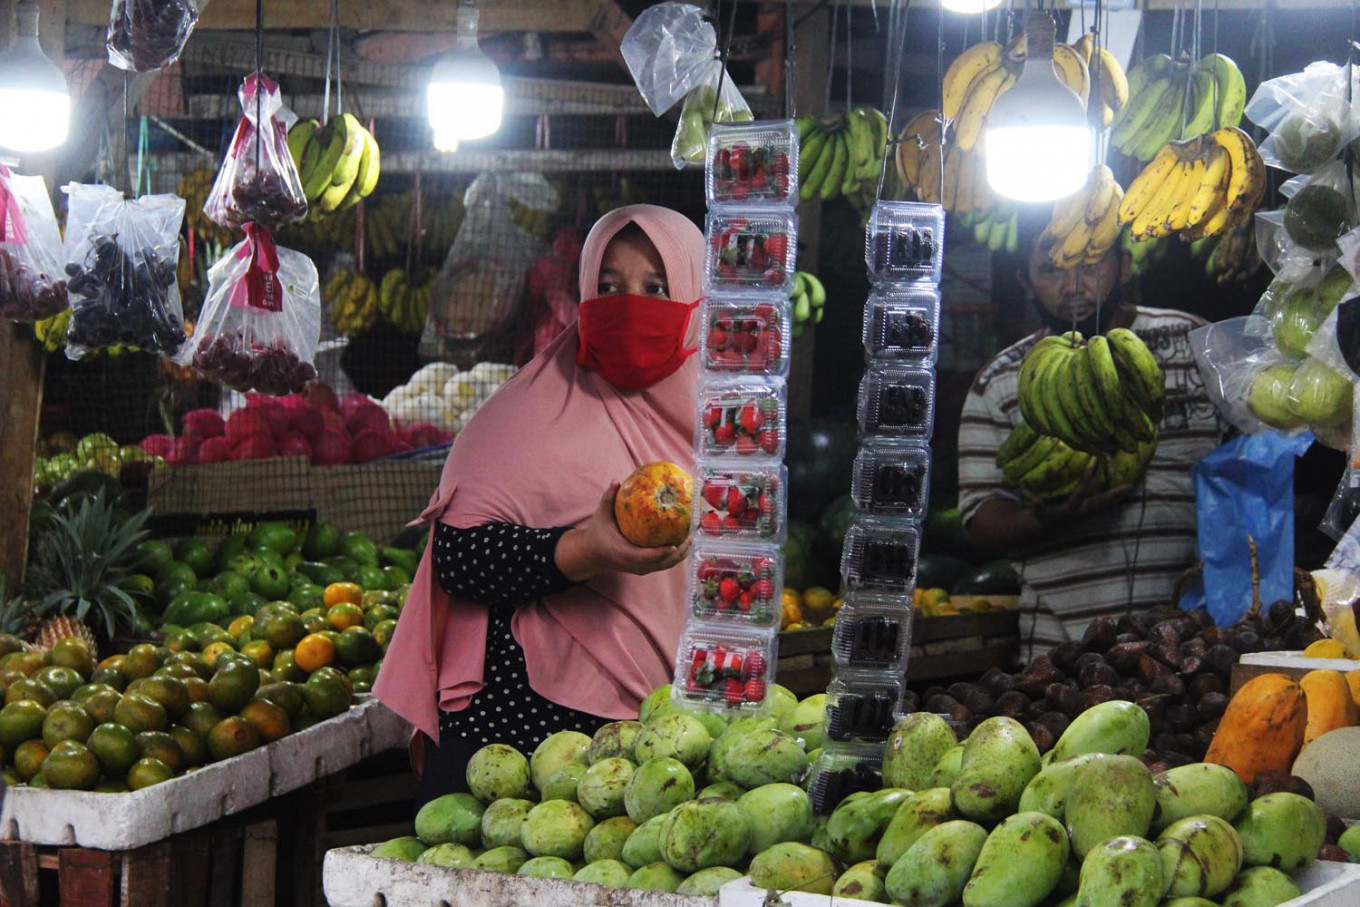 Indonesia records 20-year low inflation around Idul Fitri as pandemic upends purchasing power